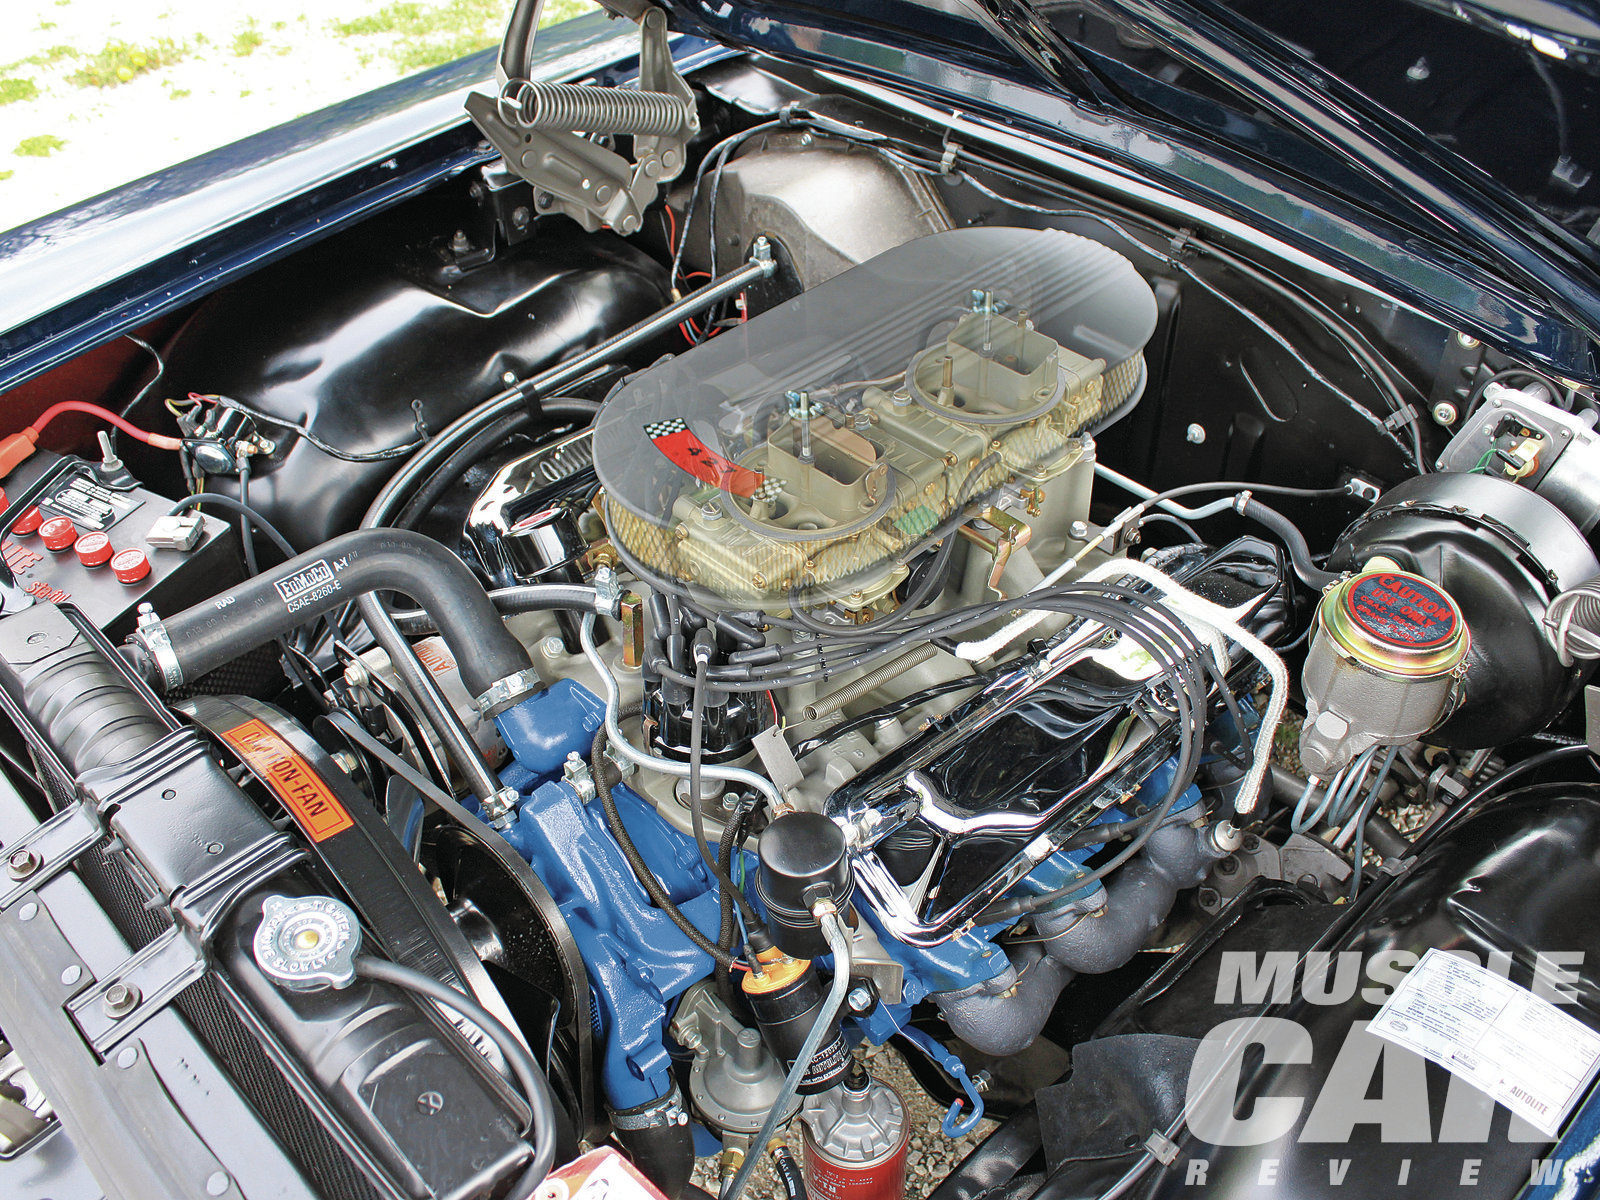 The 427 could idle in traffic or wind to a lofty redline. Later Ford performance engines were clearly aimed at street operation, but the 427 was loaded with premium performance parts. It was the most powerful, uncompromising engine Ford ever offered to the public.